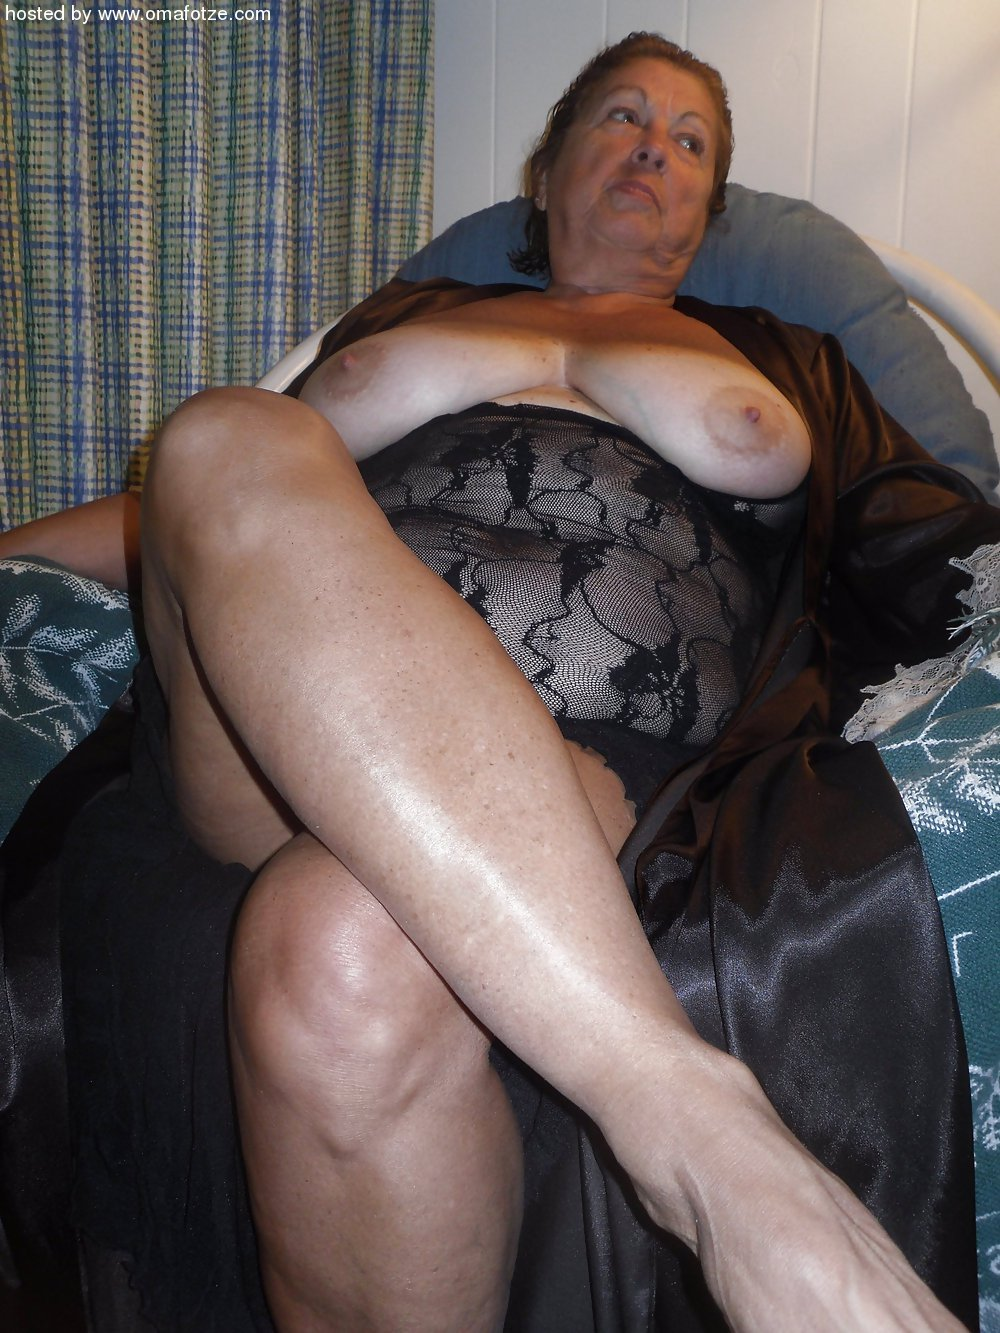 Hot Granny Porn Pictures And Vids - Free Granny And Mature -3565